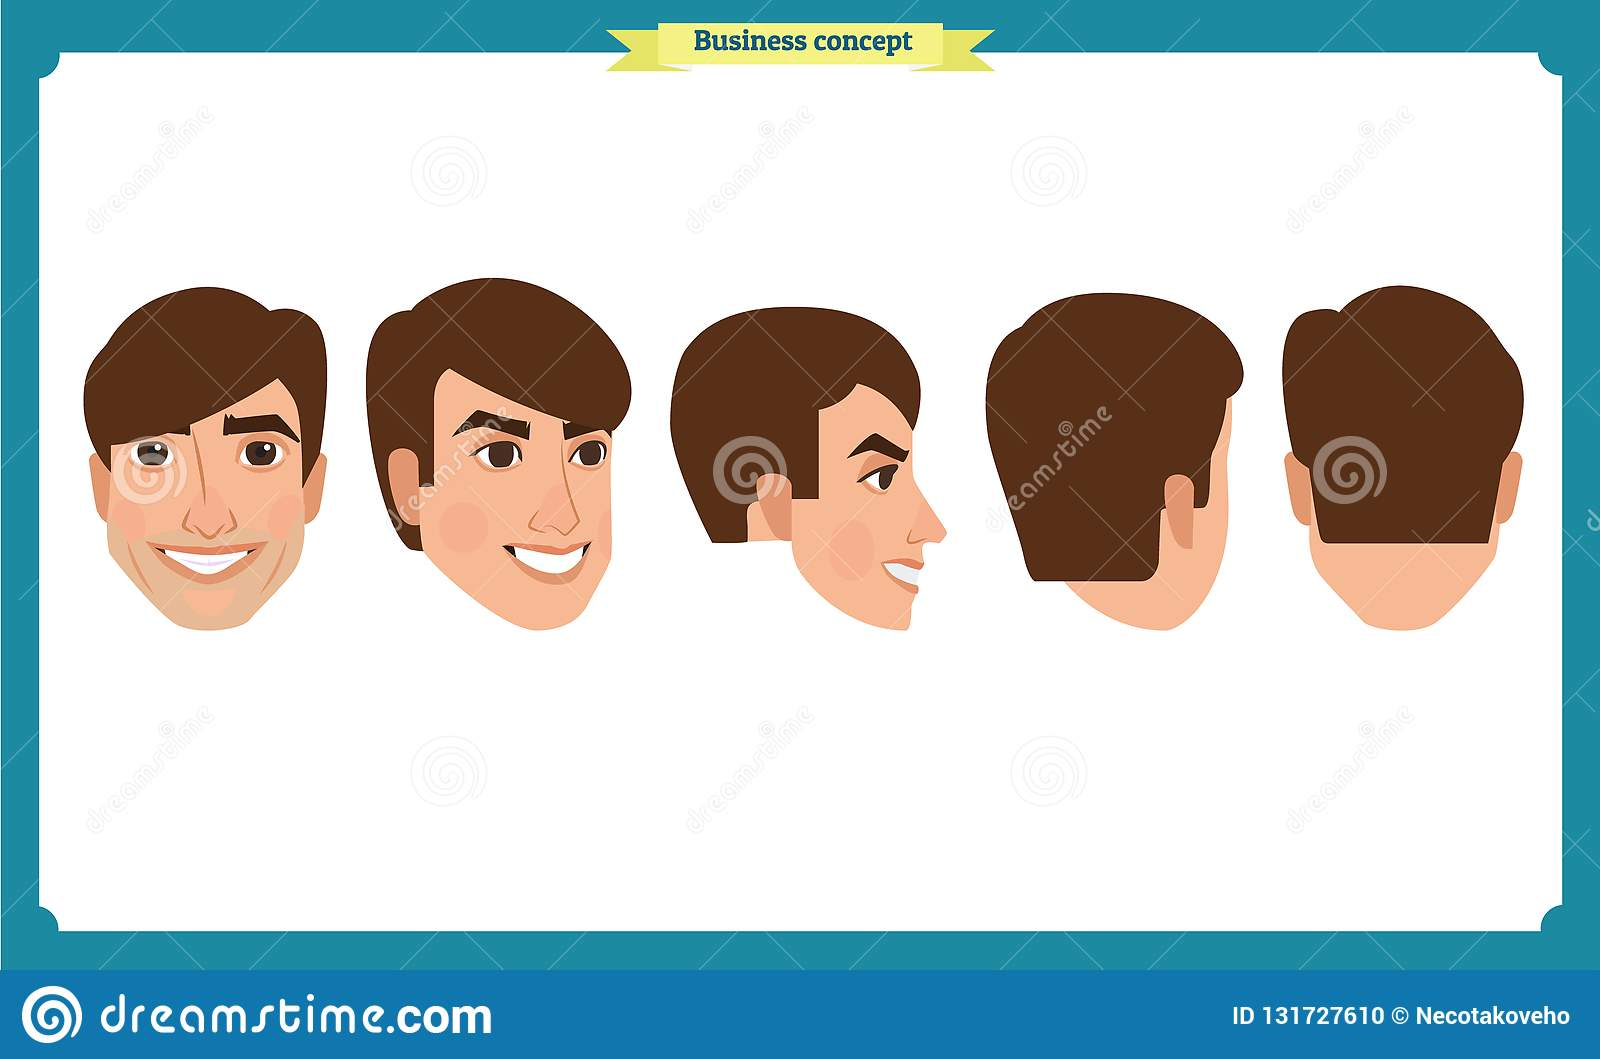 Working People, Business Man Avatar Icons Flat Design People